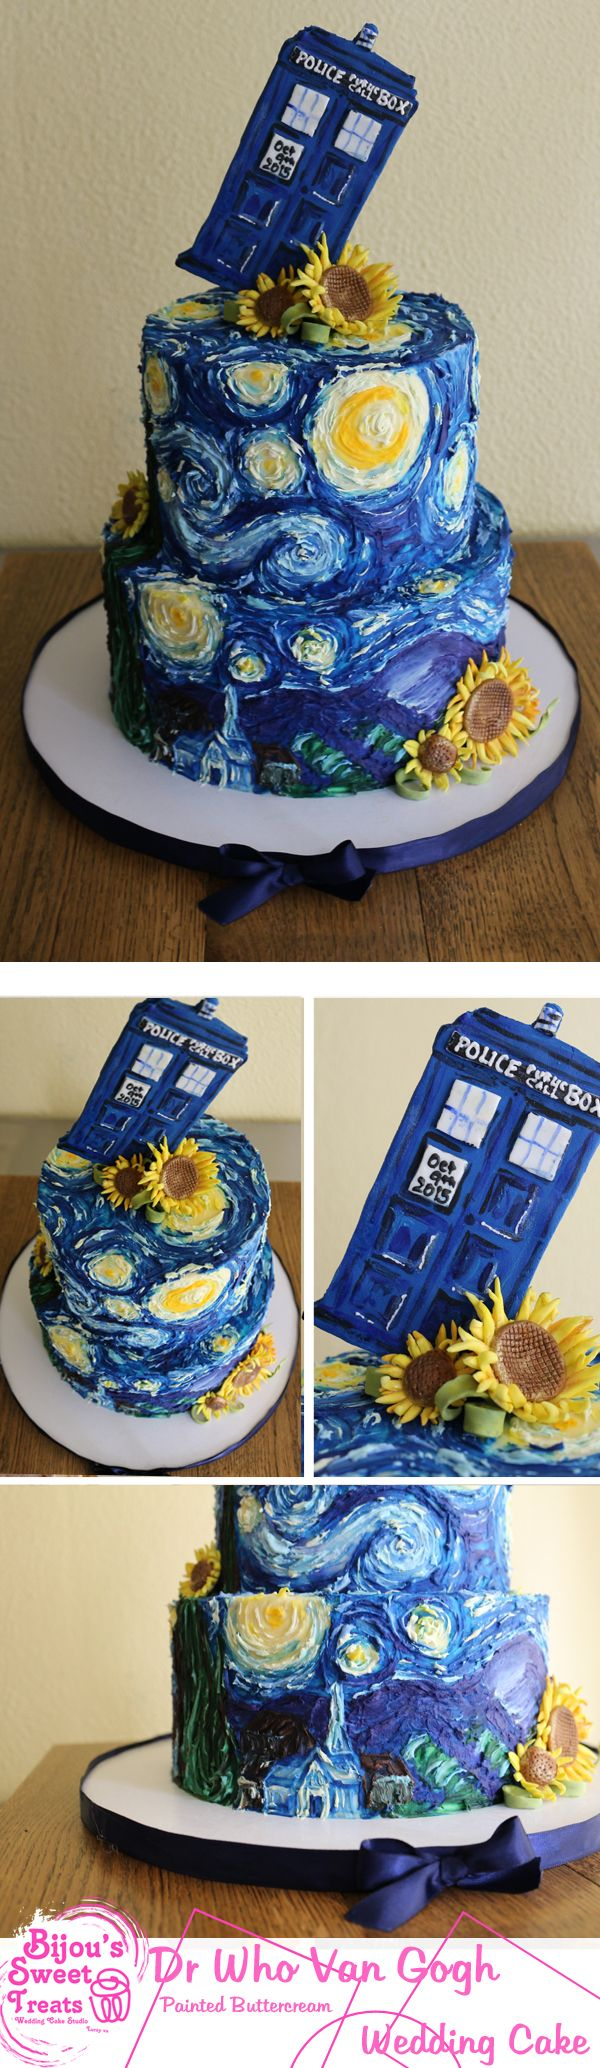 Bijou's Sweet Treats signature painted buttercream Doctor Who Van Gogh wedding cake. #weddingcake #doctorwho #VanGogh